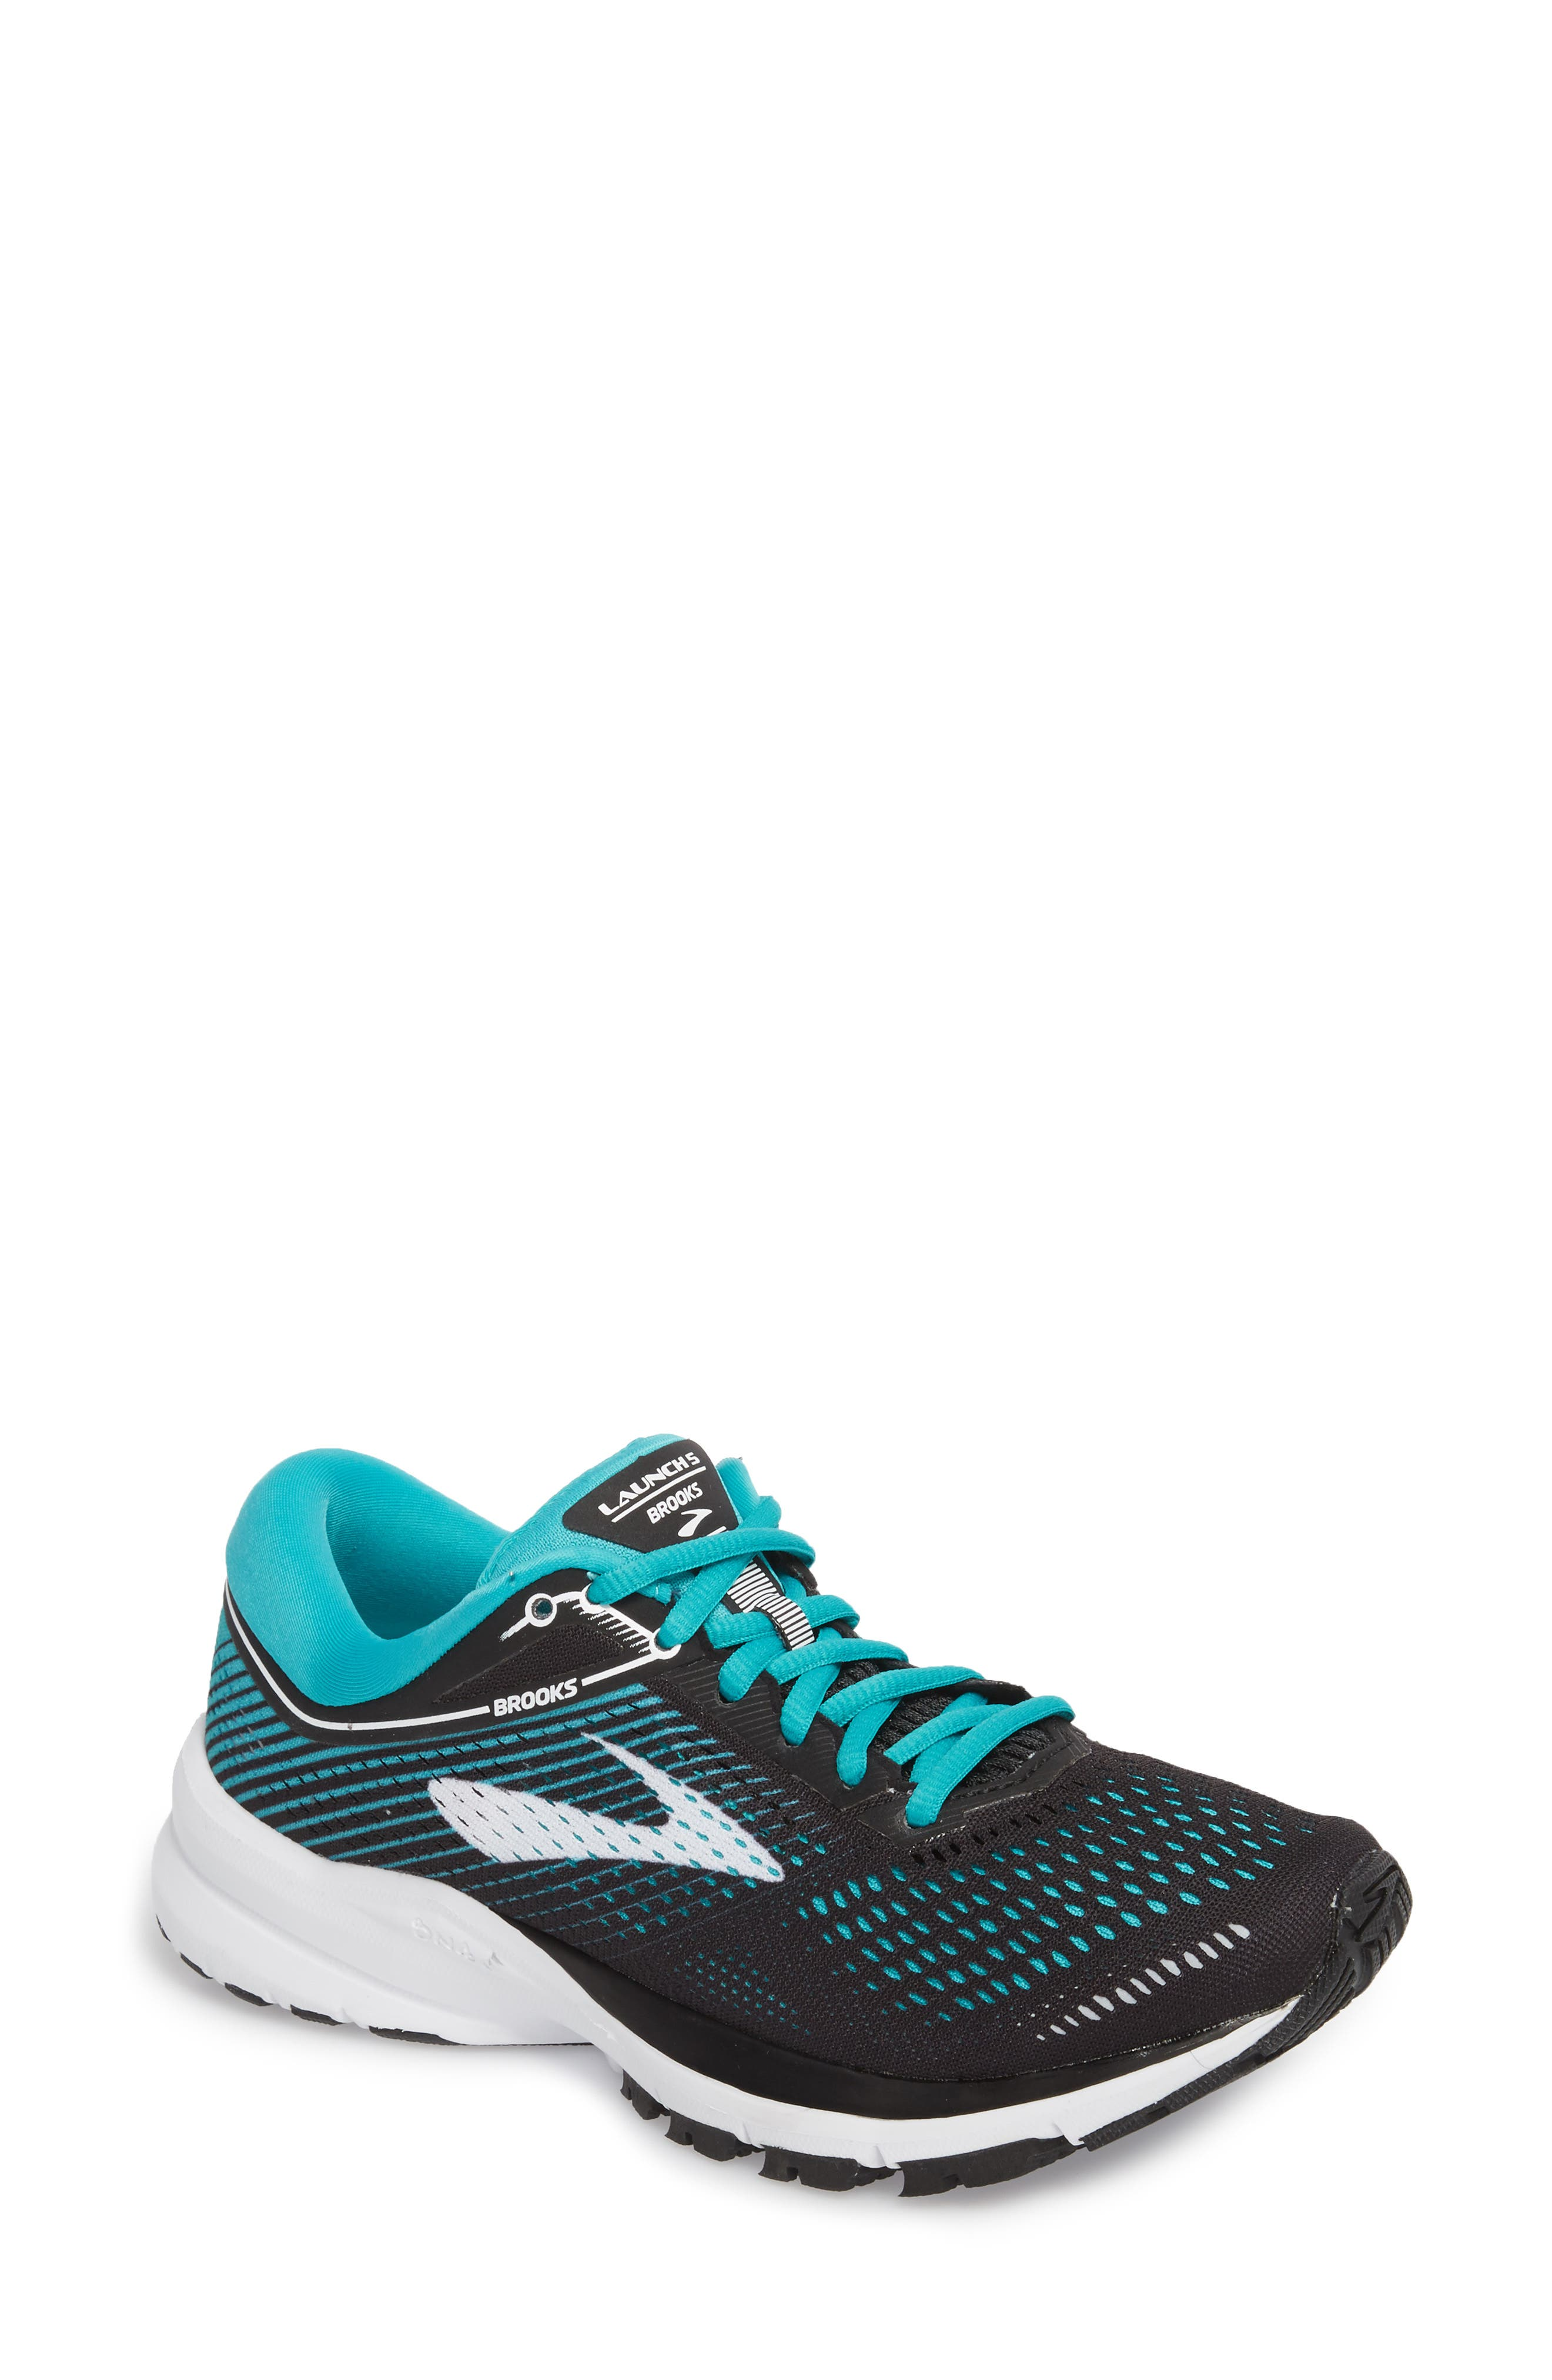 BROOKS Launch 5 Running Shoe, Main, color, BLACK/ TEAL GREEN/ WHITE